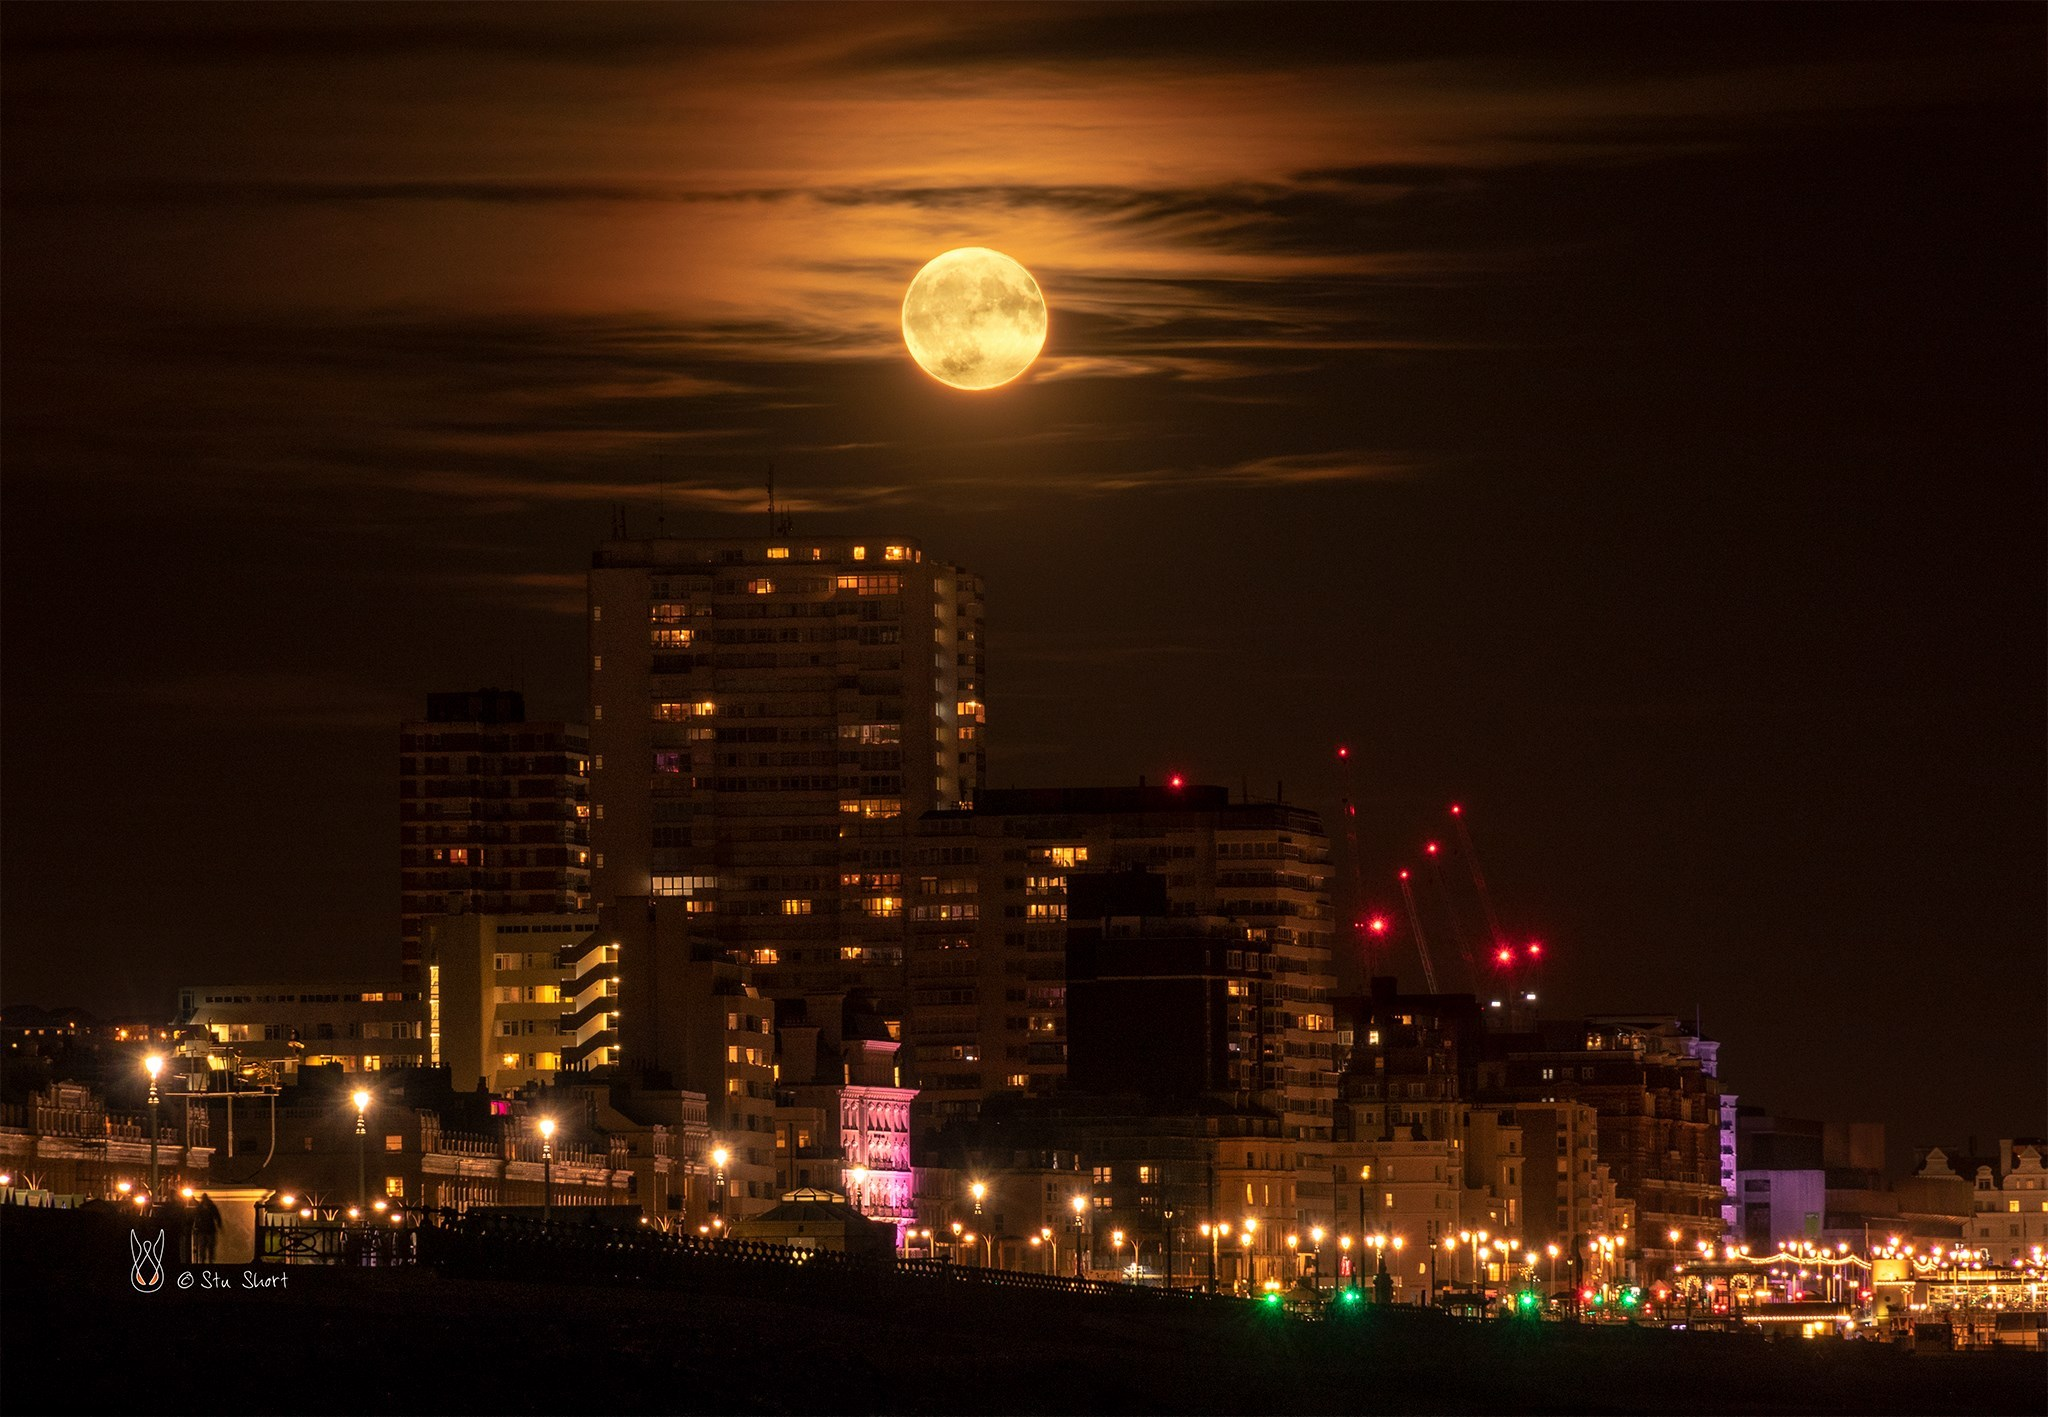 The Argus Camera Club member Stu Short to this photograph of an (almost but not quite) Harvest Moonrise over Brighton last night...